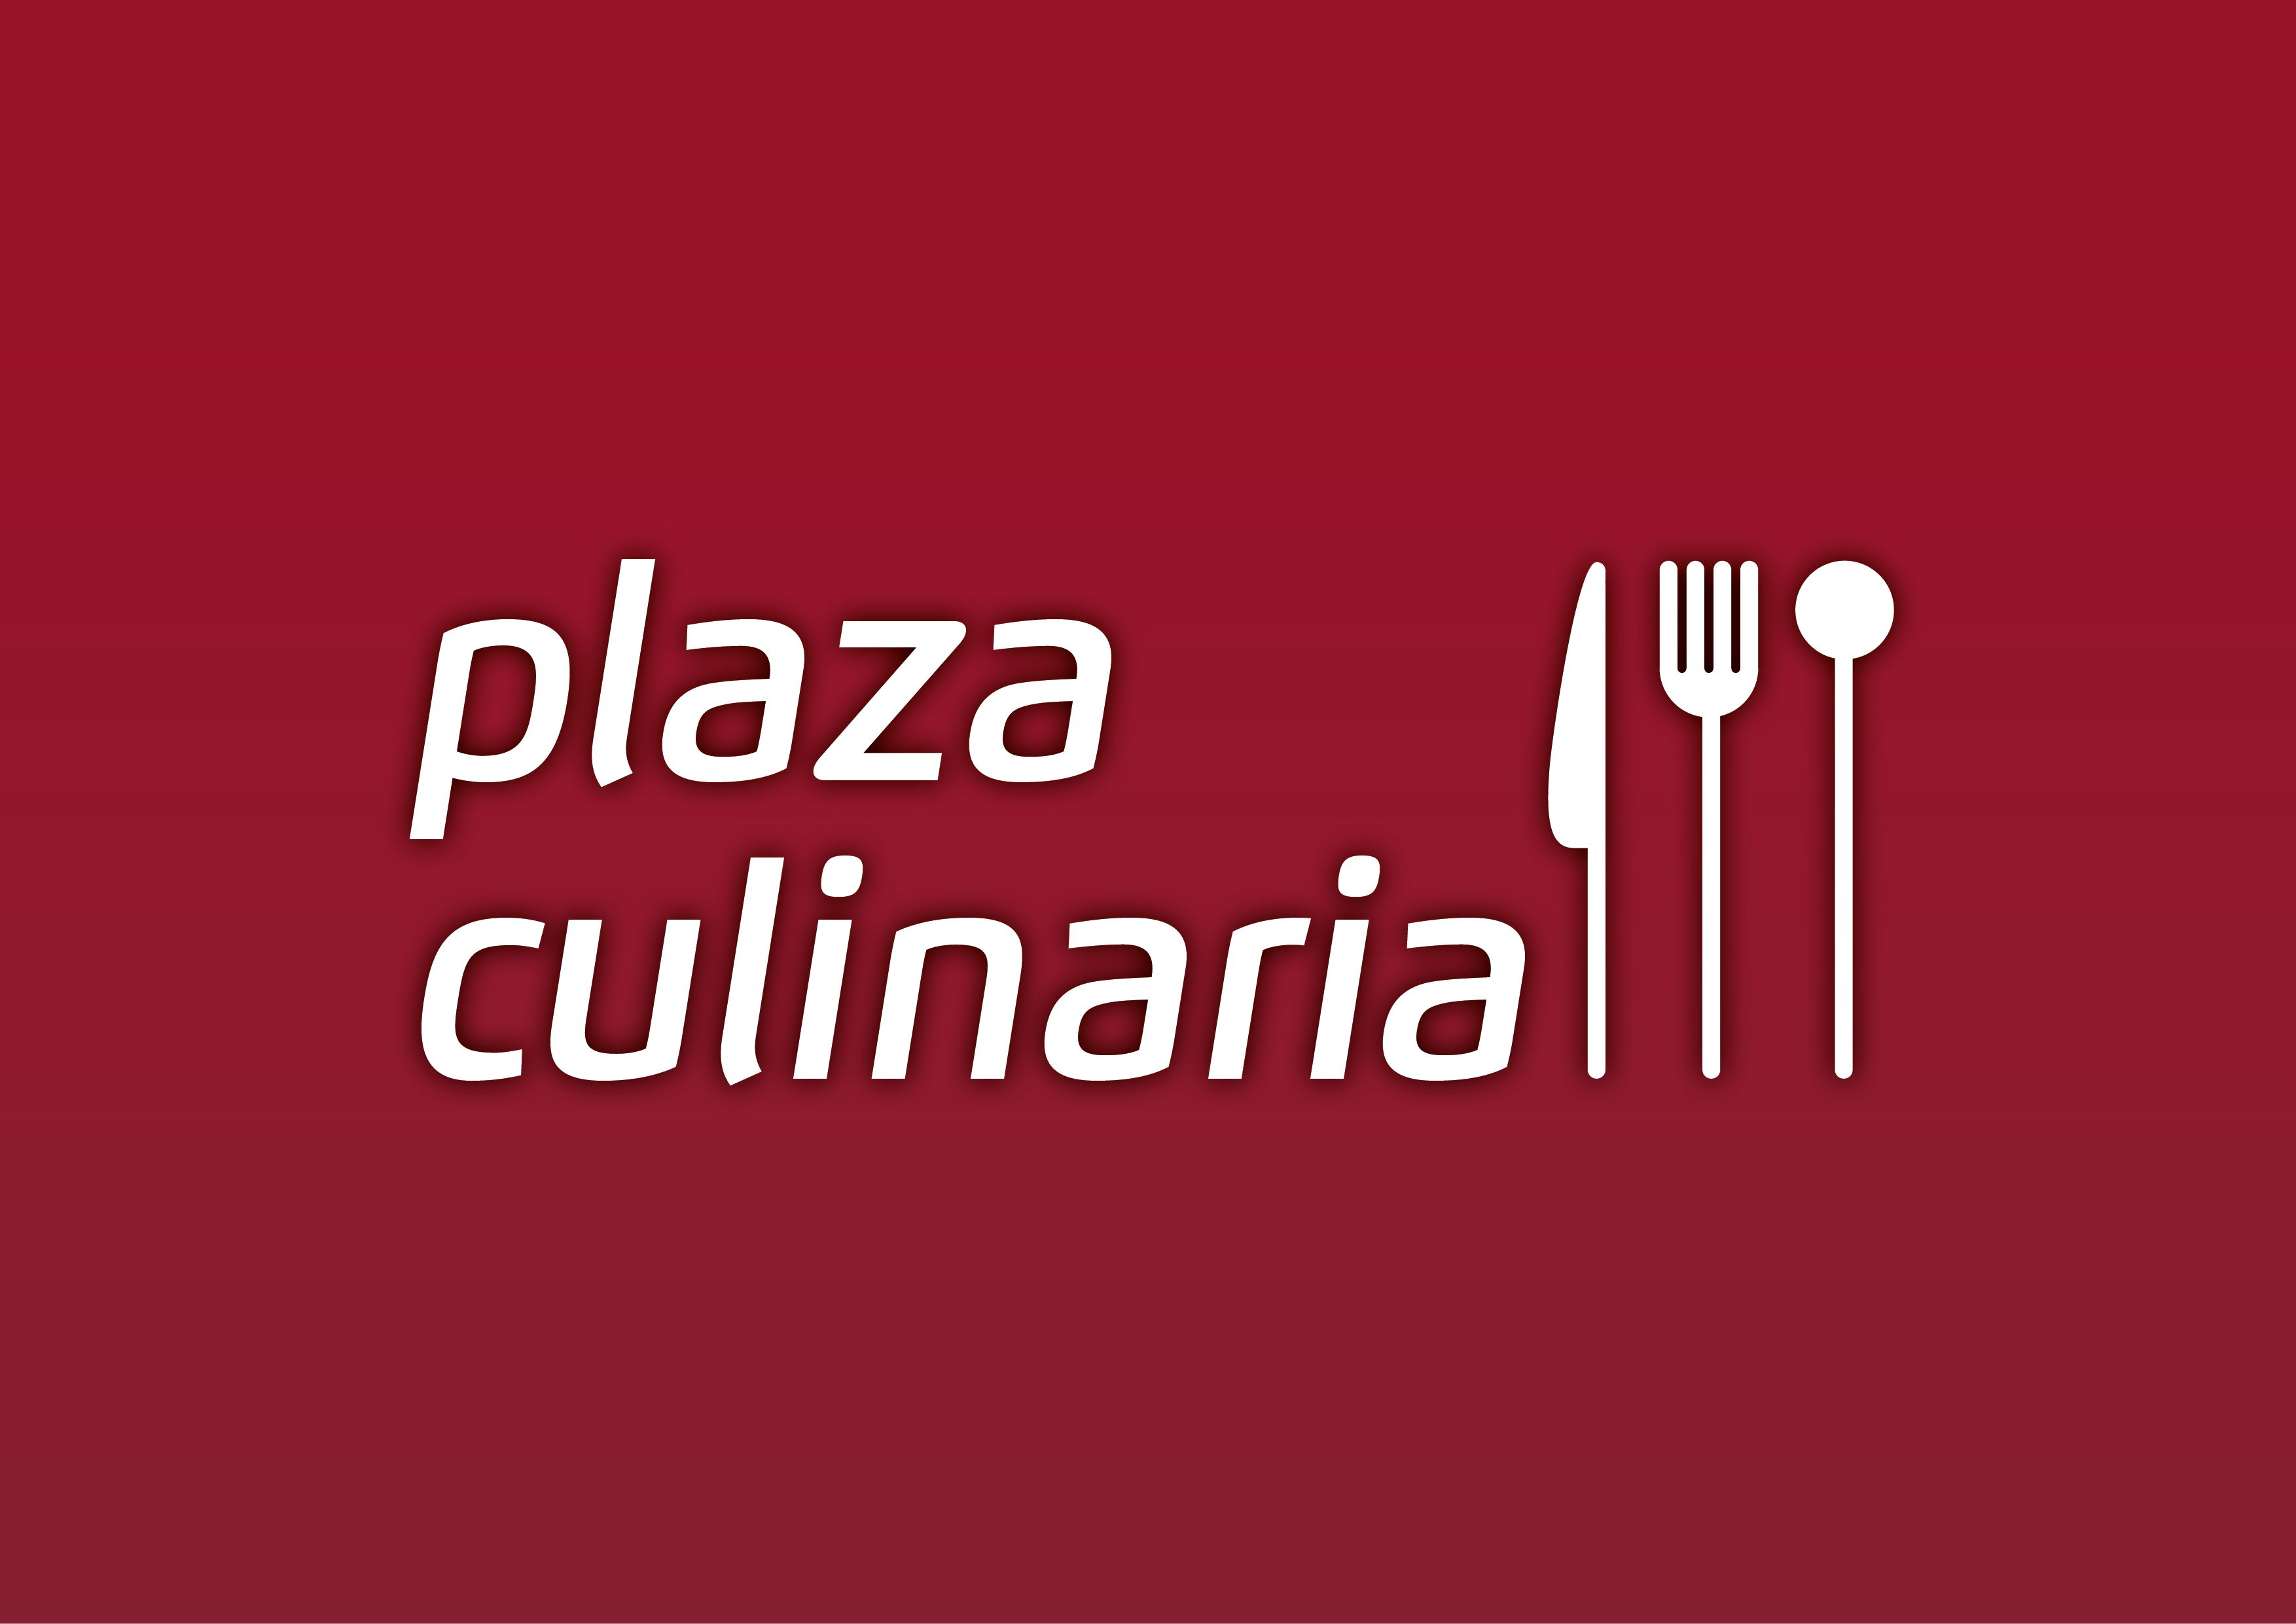 https://www.plaza-culinaria.de/fileadmin/content/PlazaCulinaria/Plaza_2019/PC_Logo_roter_Hintergrund.jpg